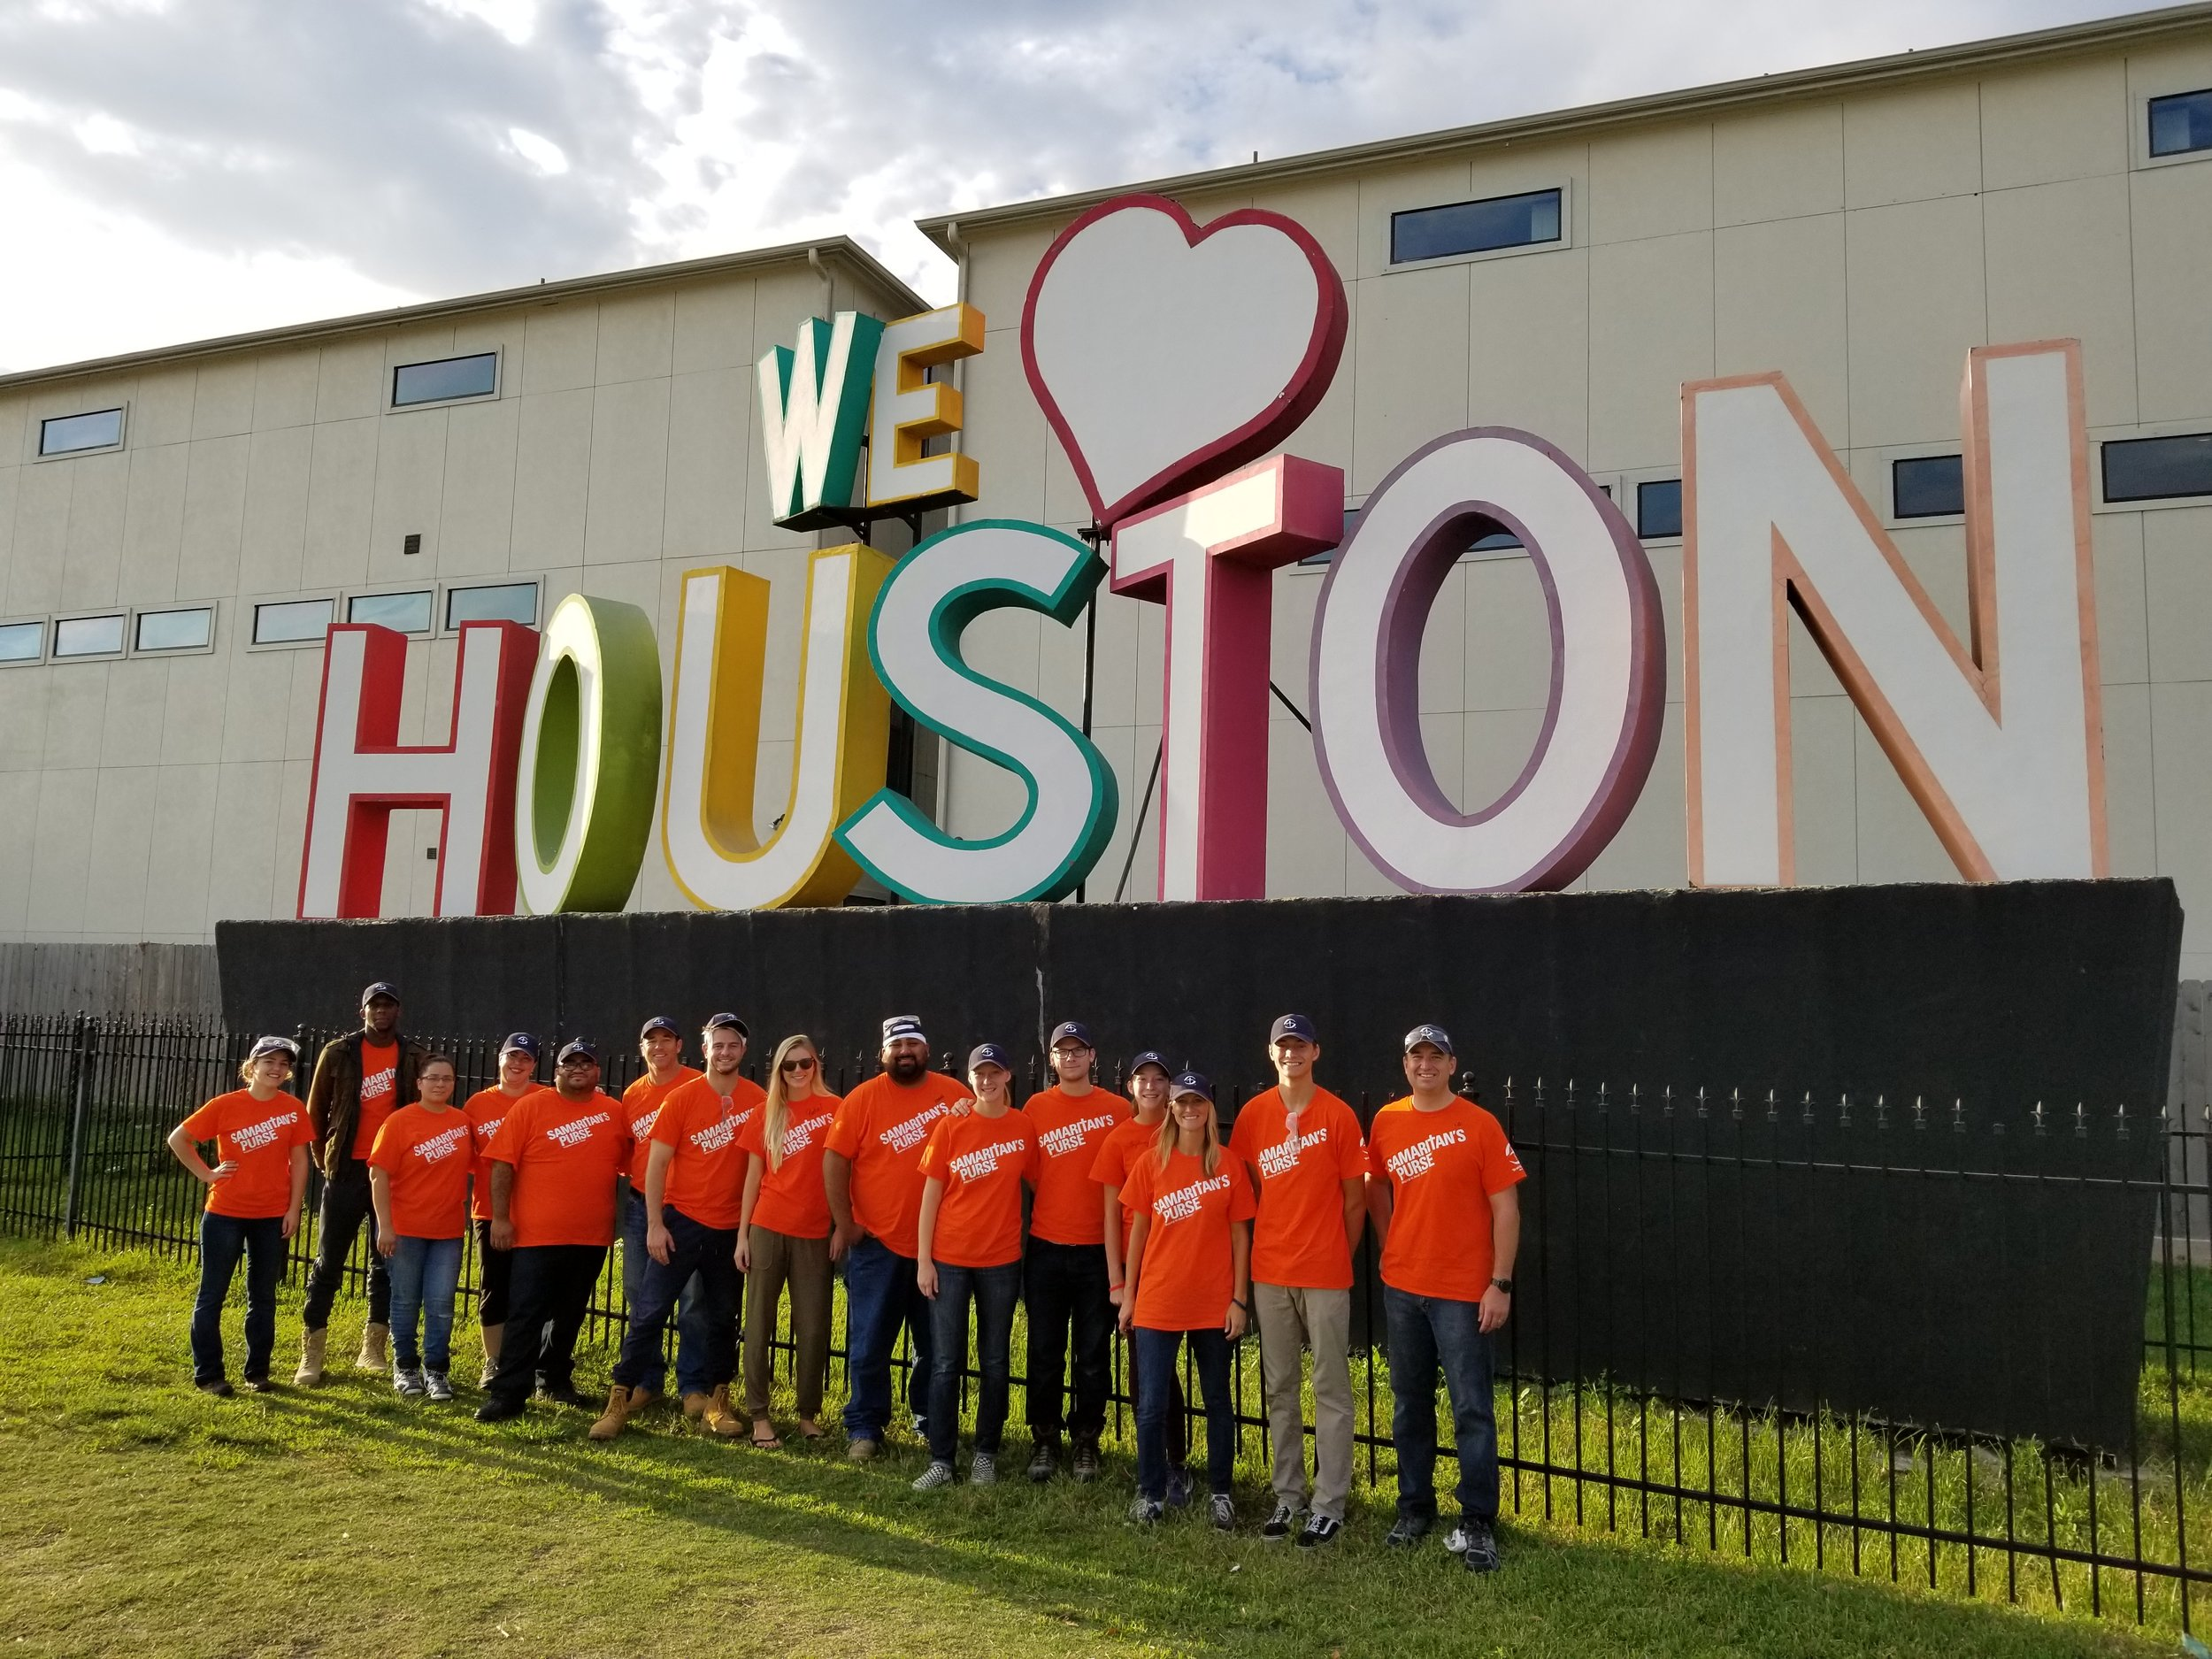 we heart houston.jpg